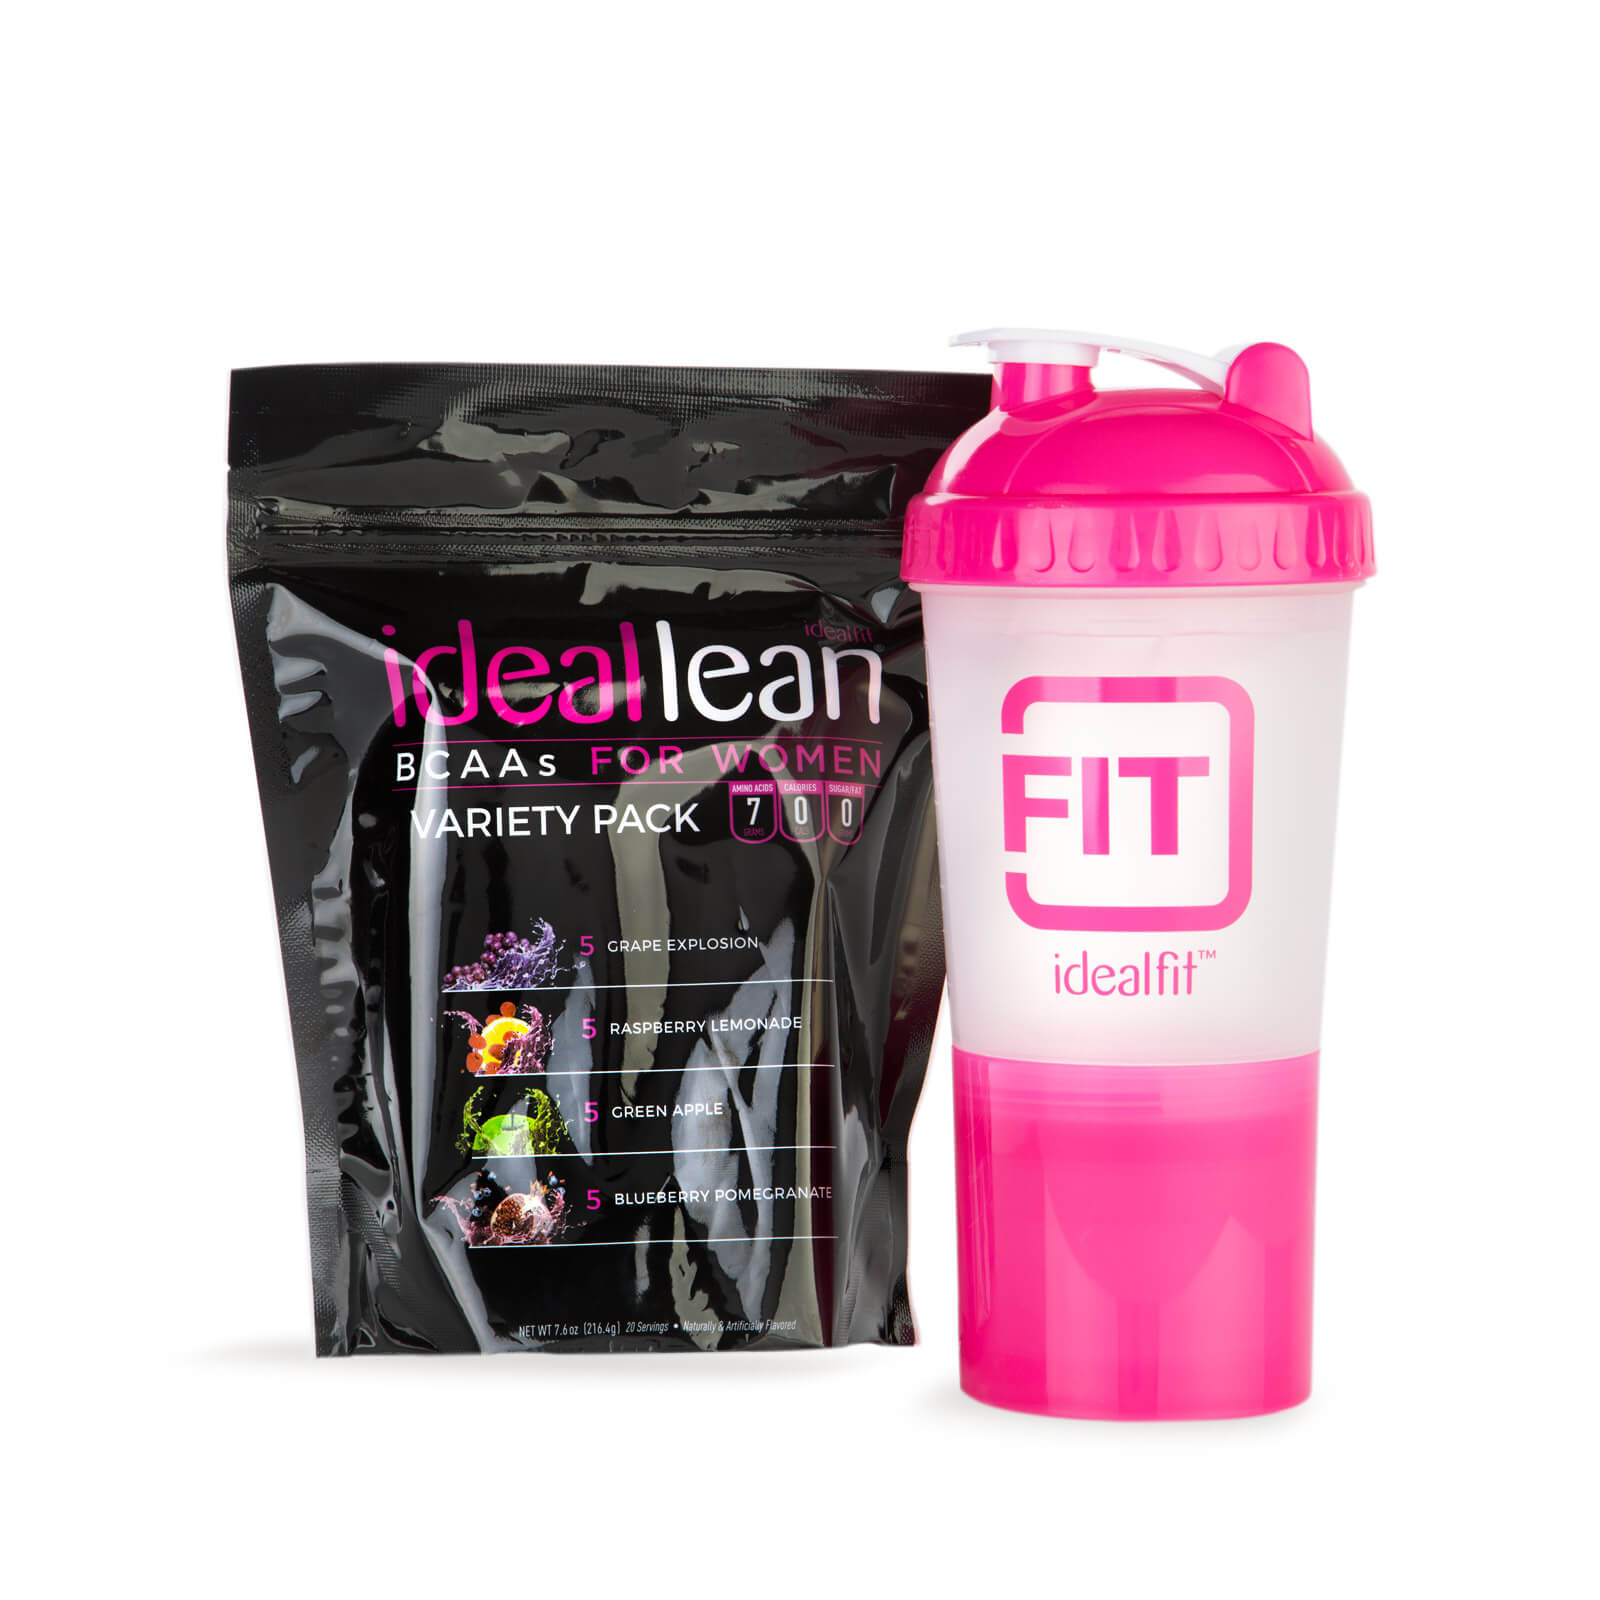 IdealLean BCAAs Variety Pack (20 Count) + Shaker Bundle